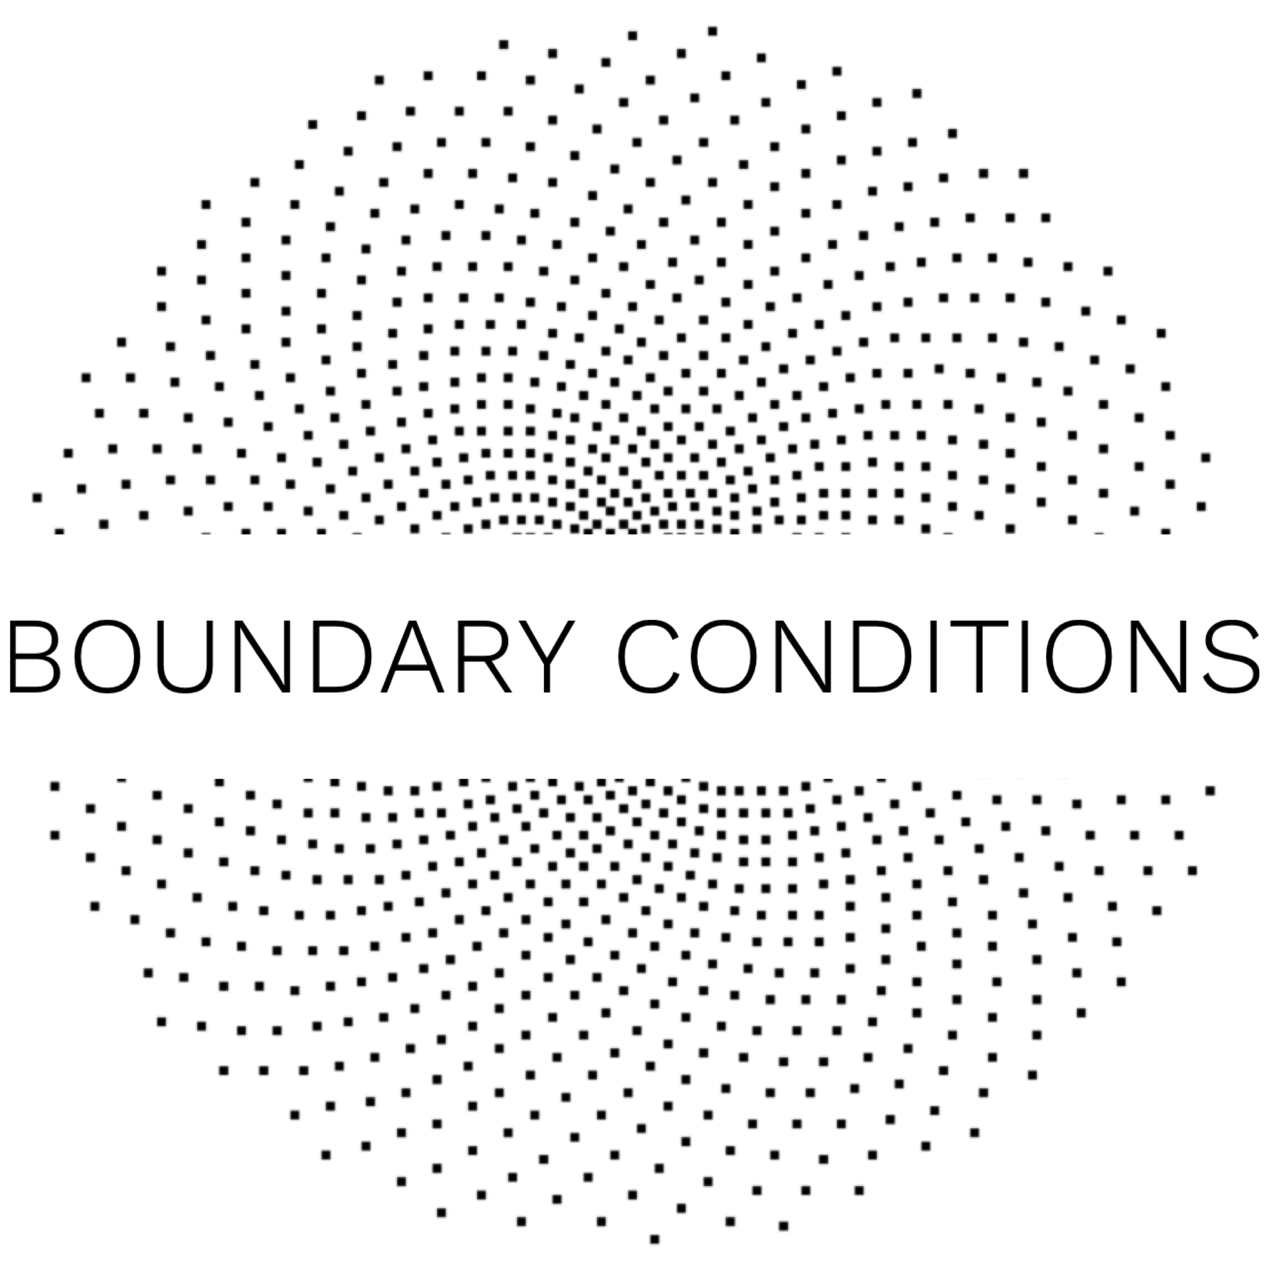 BOUNDARY CONDITIONS ONLINE